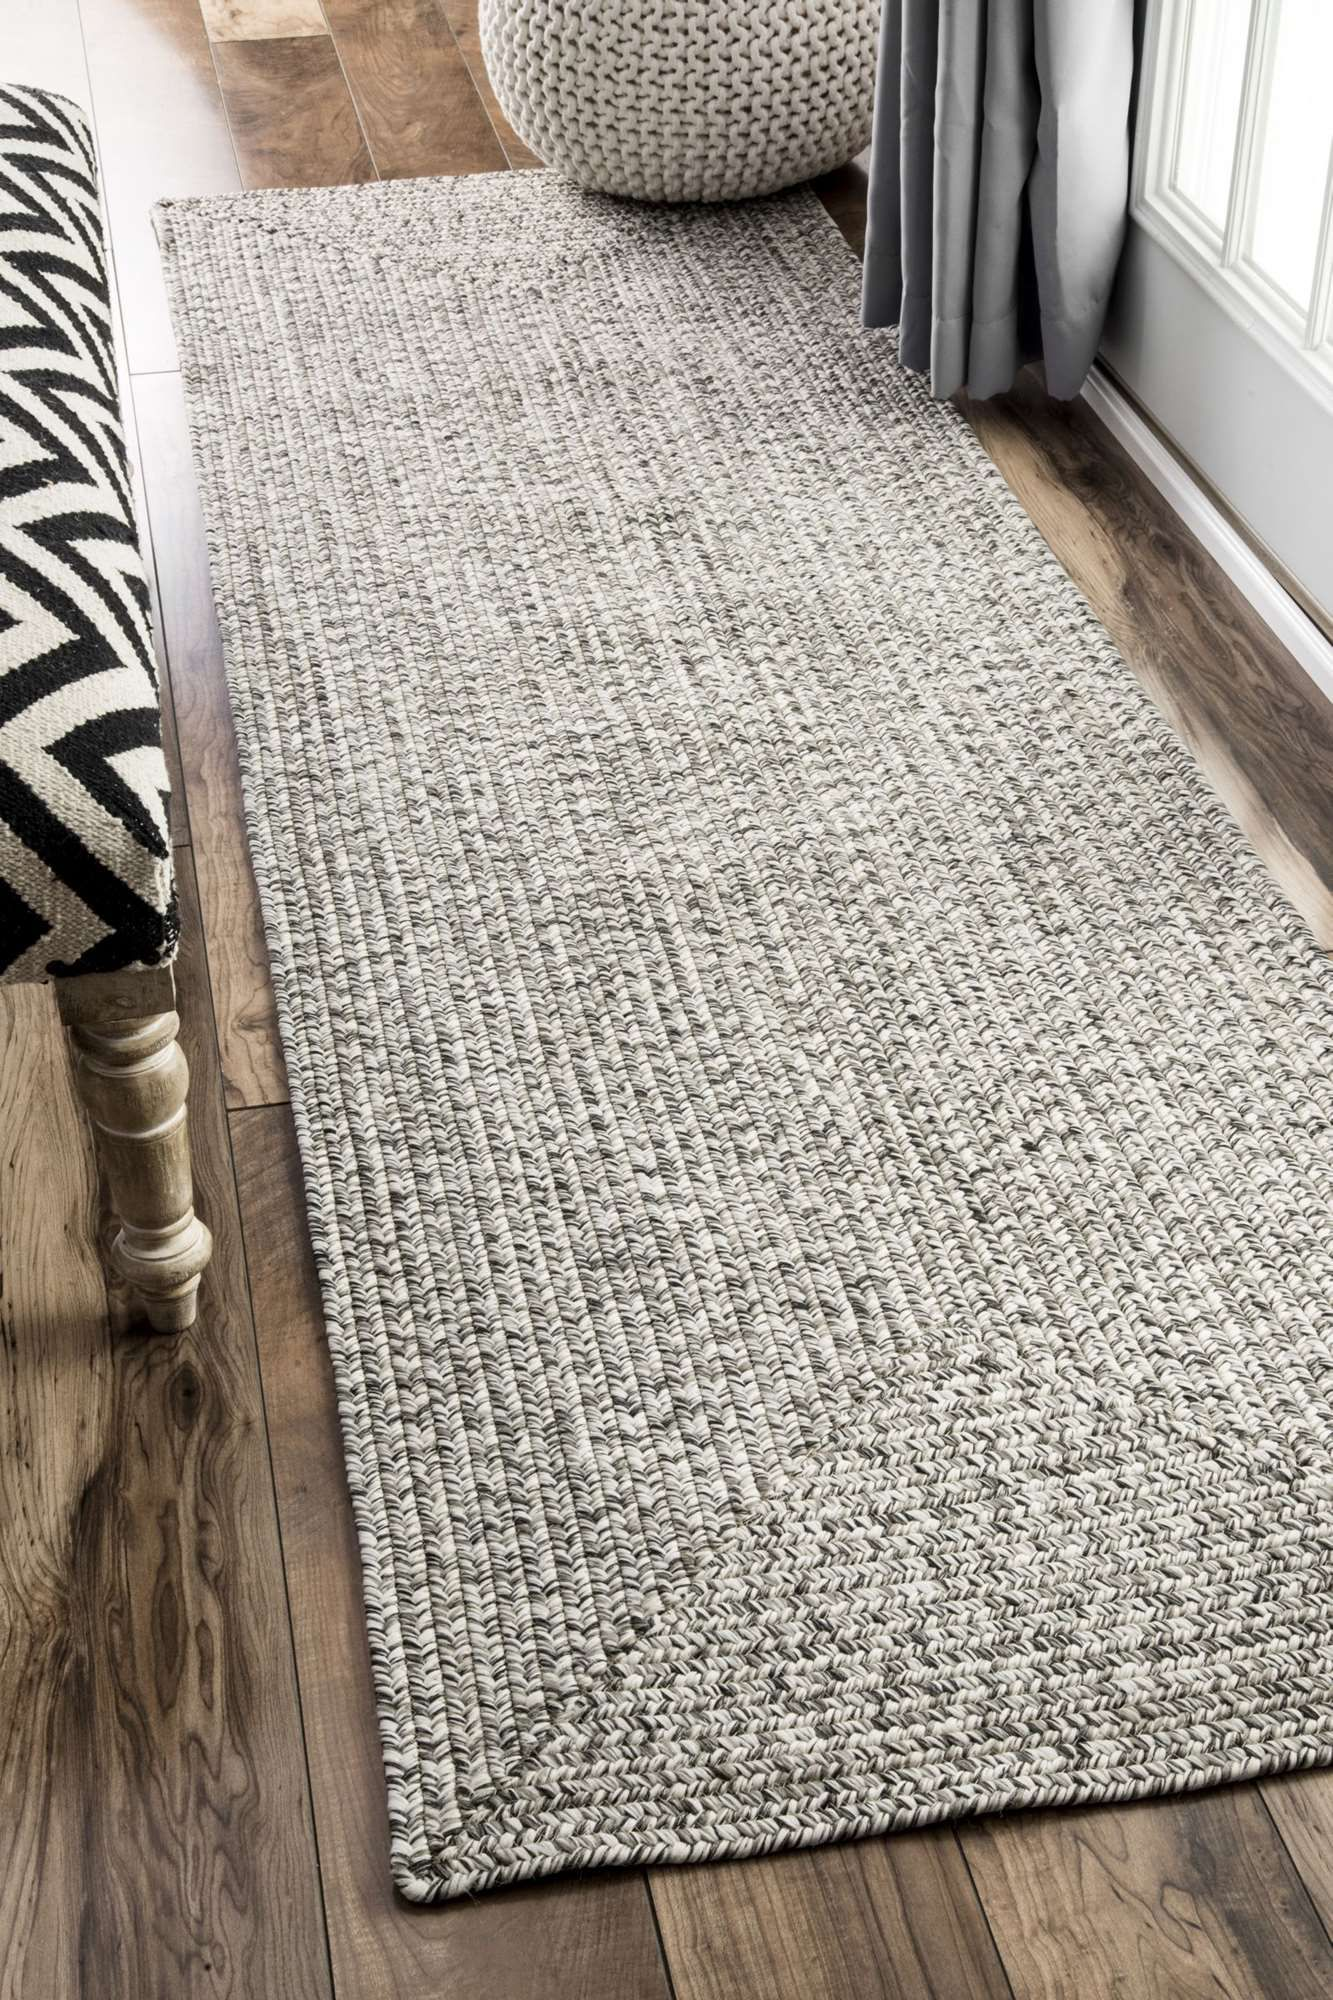 s rugs fabrica robert view by portfoliogallery sediment gain our area inspiration rug gallery and entryway alluval in